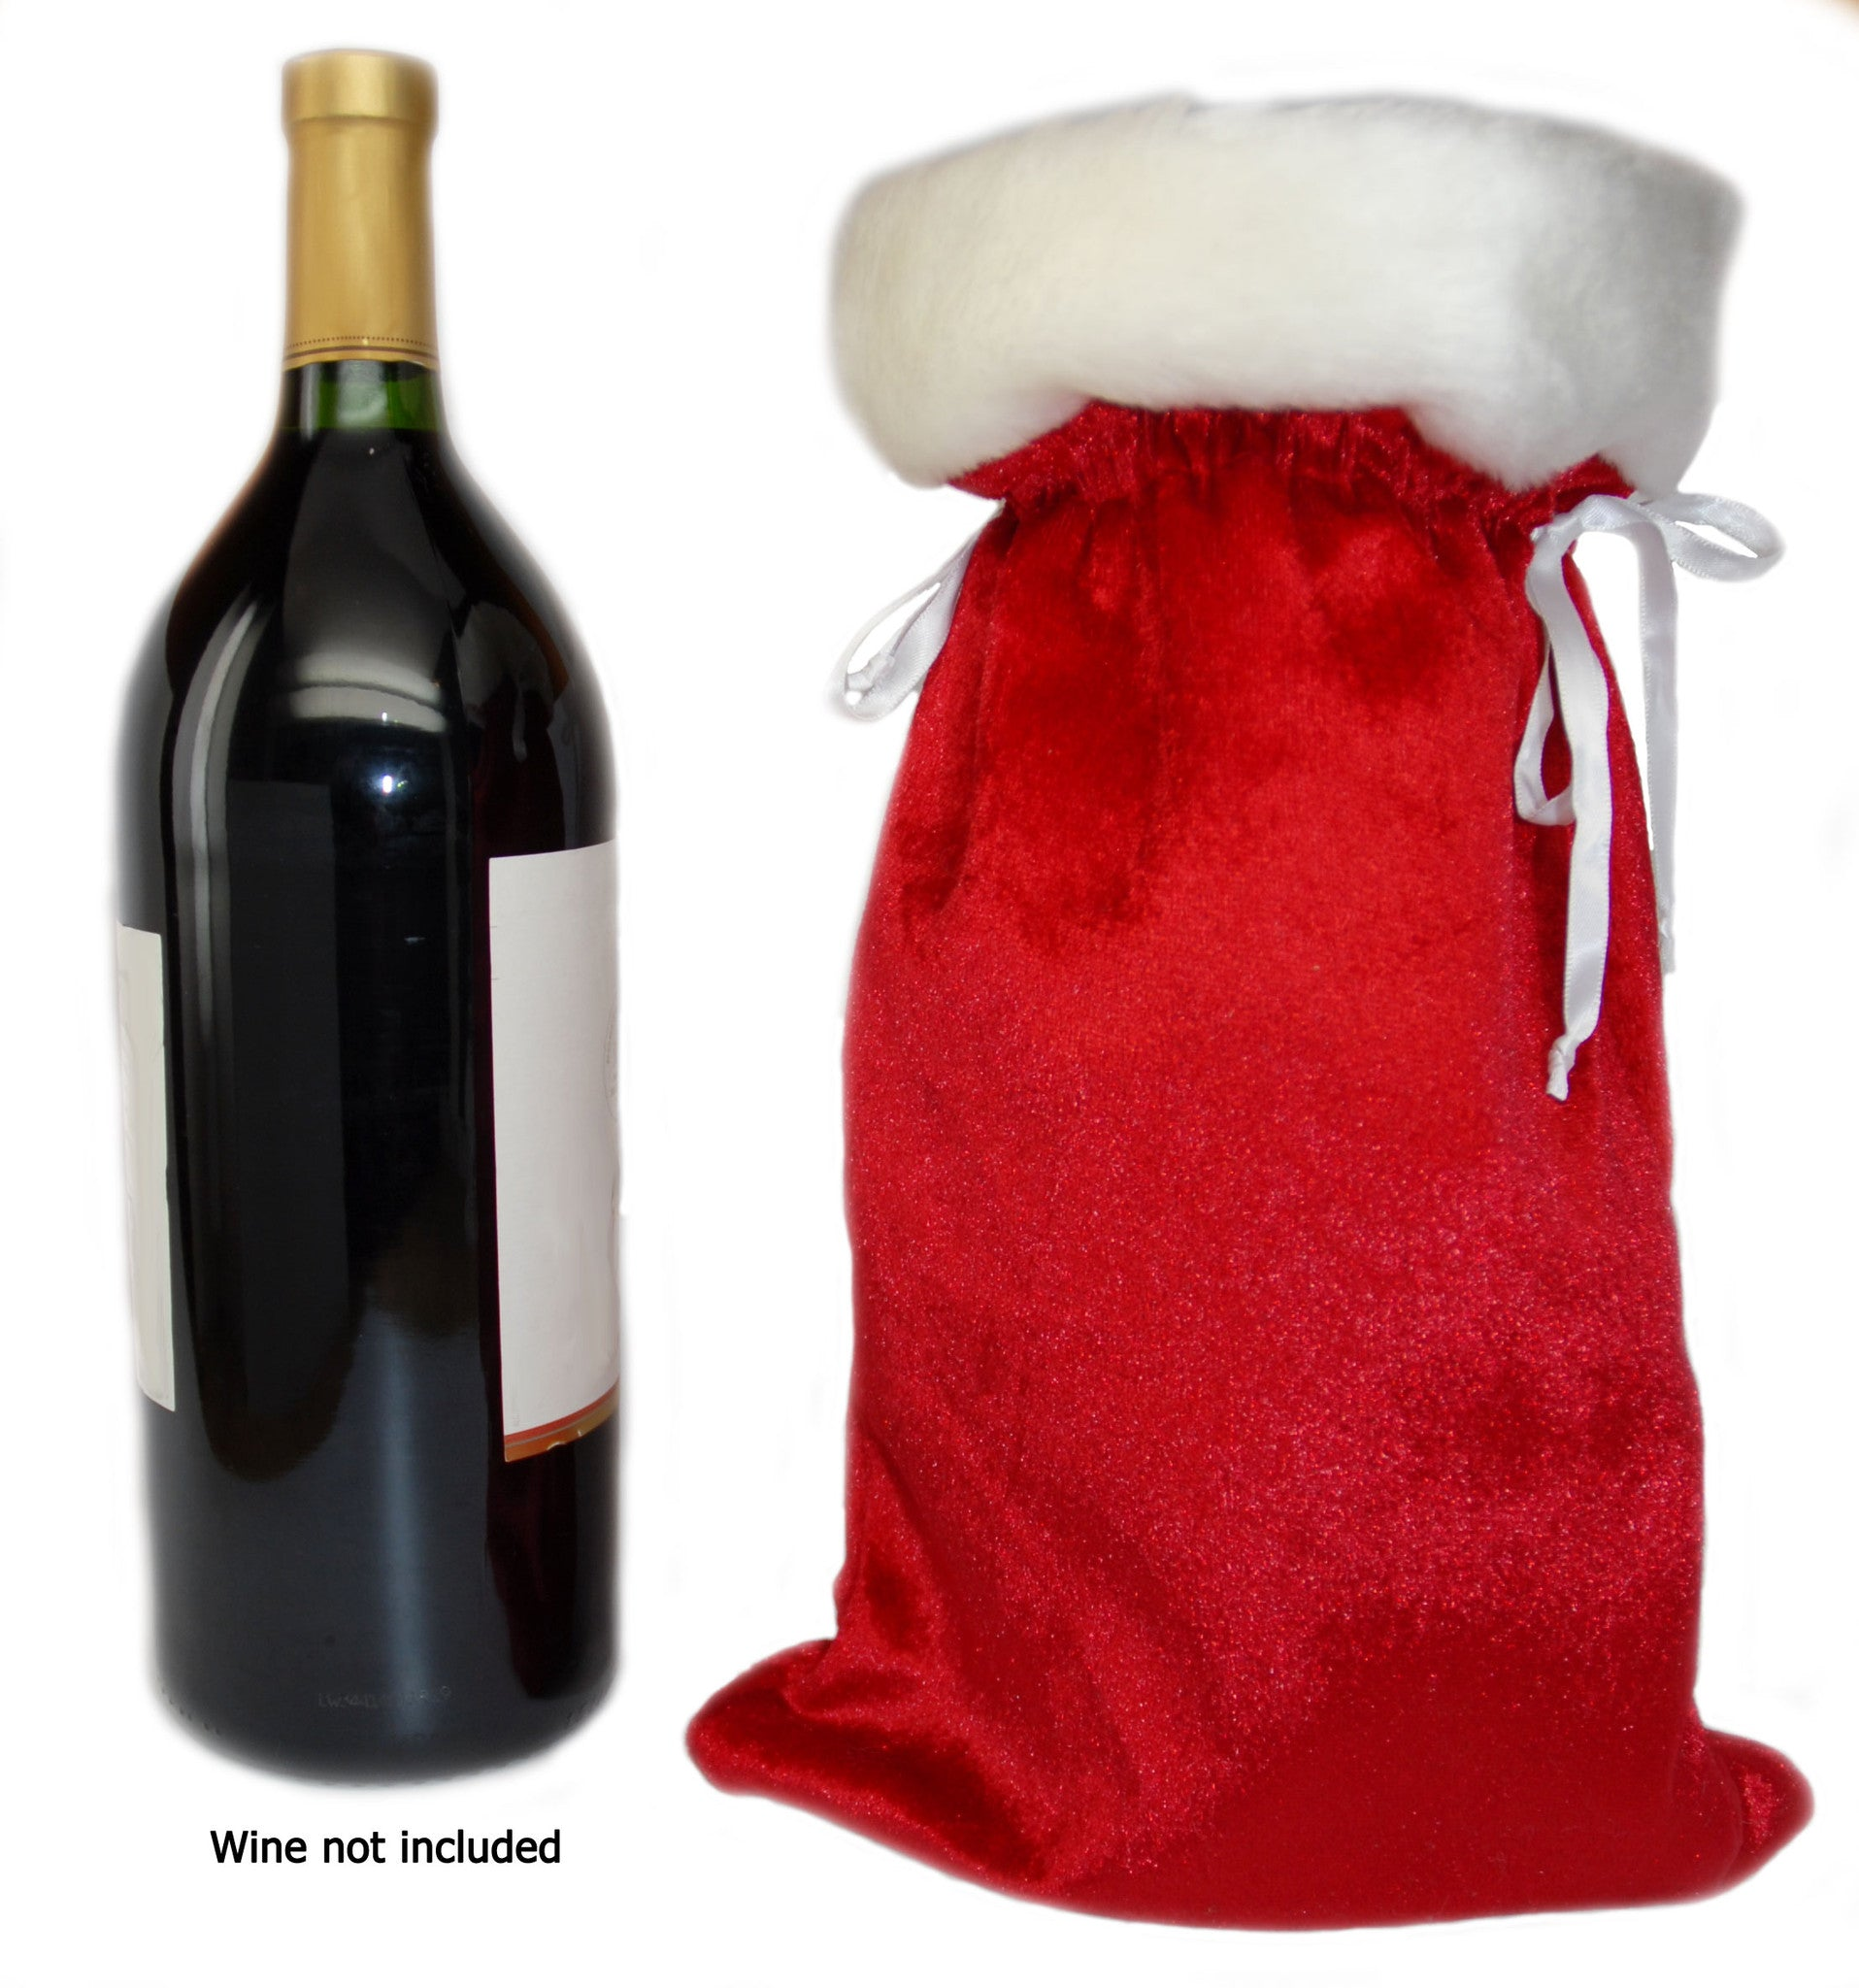 Christmas Liquor.Christmas Holiday Wine Liquor Gift Bags Wide Size 2 Bags By Centimom